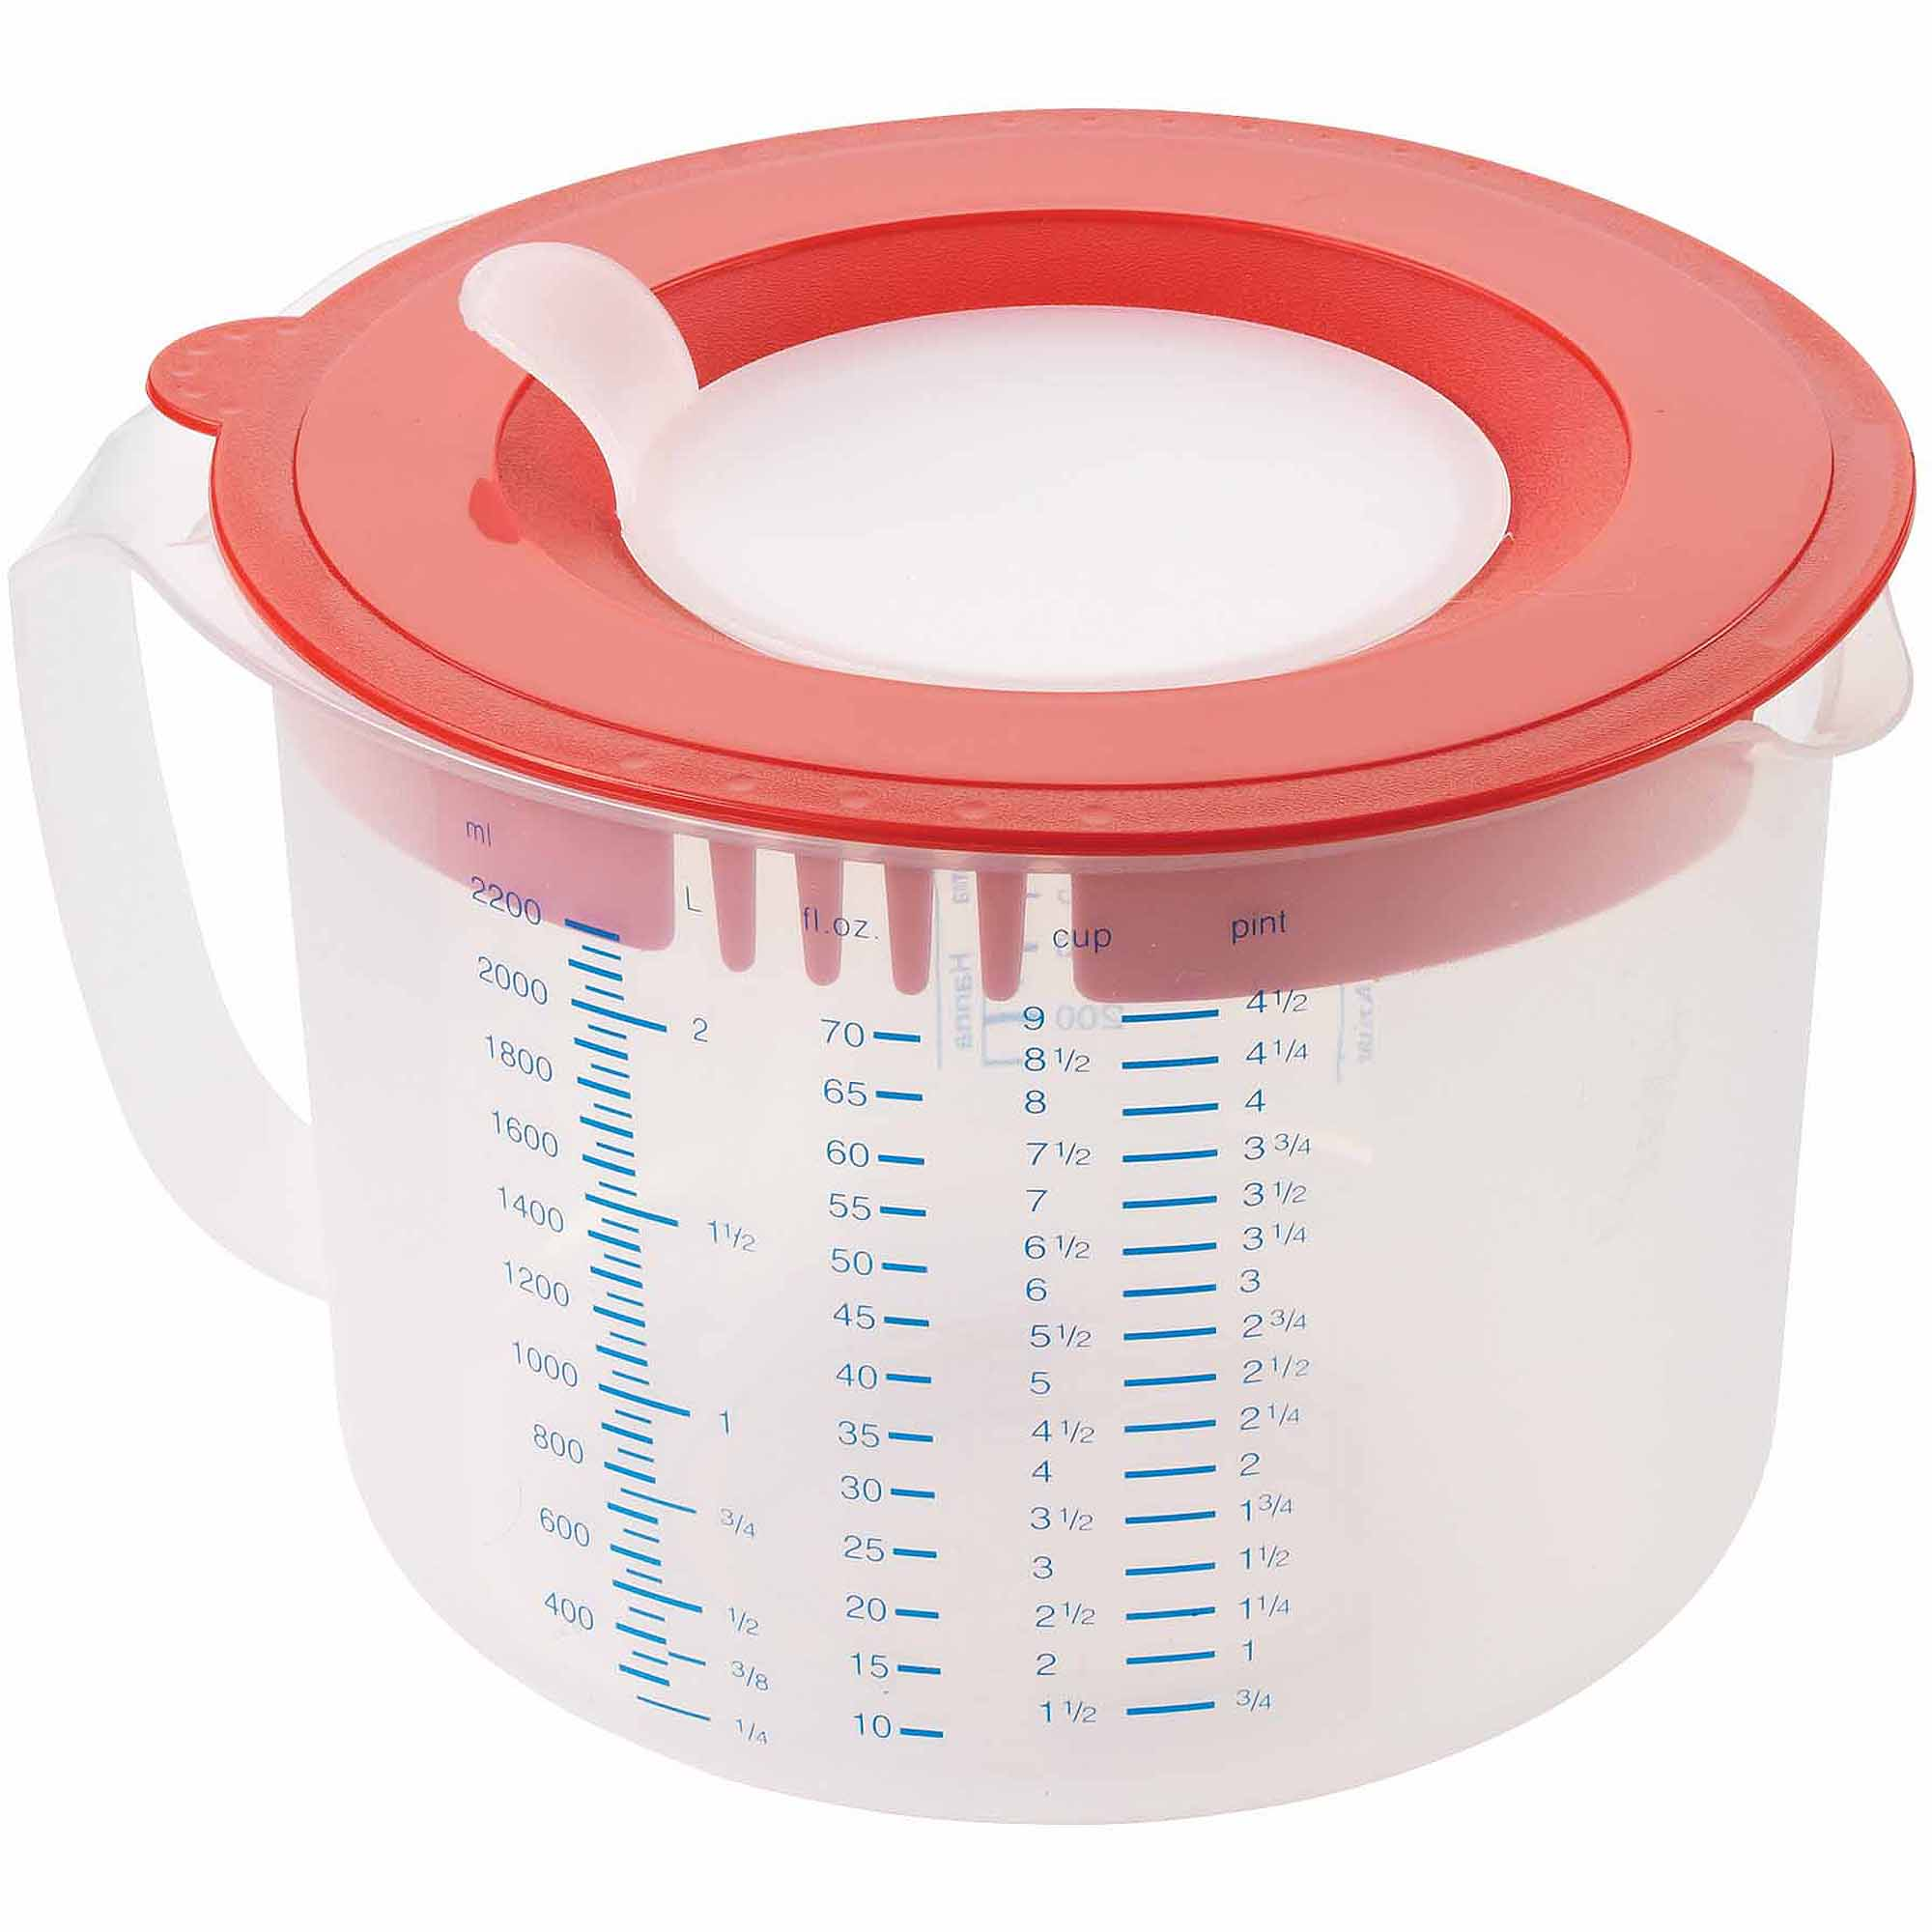 Leifheit 9-Cup 3-in-1 Measuring Cup, Transparent White and Red